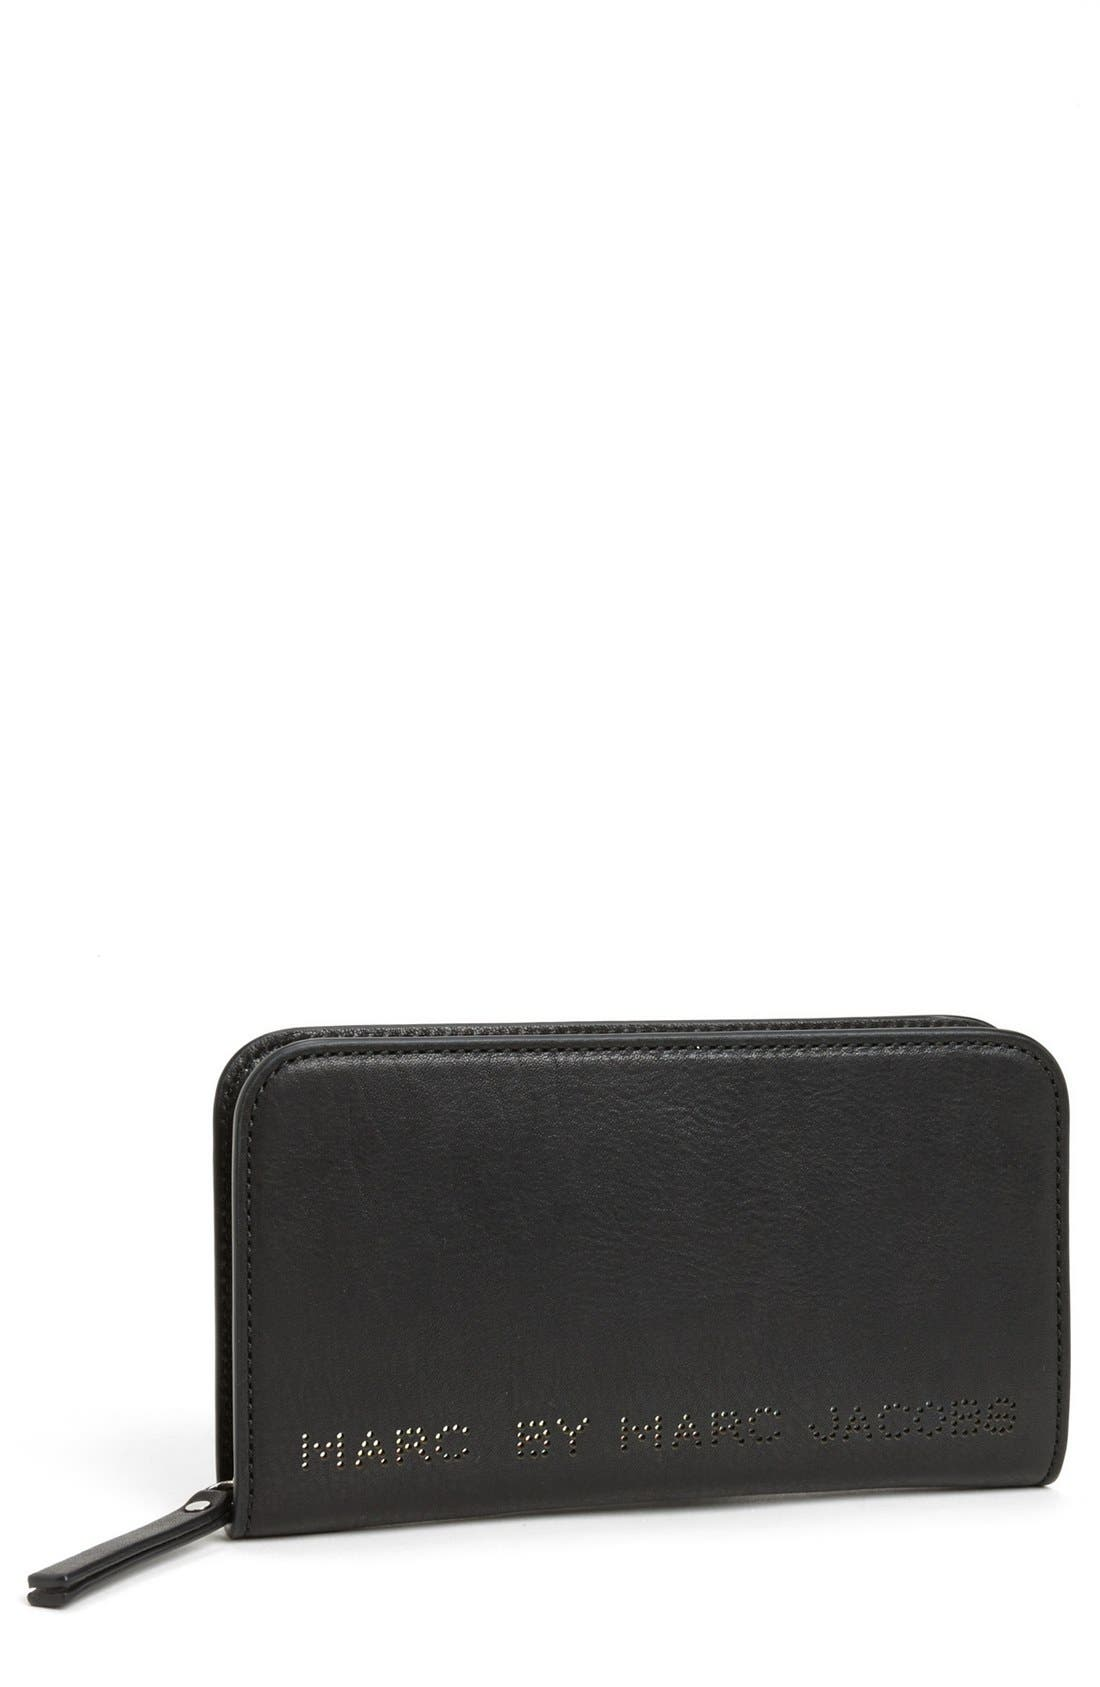 Main Image - MARC BY MARC JACOBS 'Sweet Jane - Medium' Leather Zip Wallet